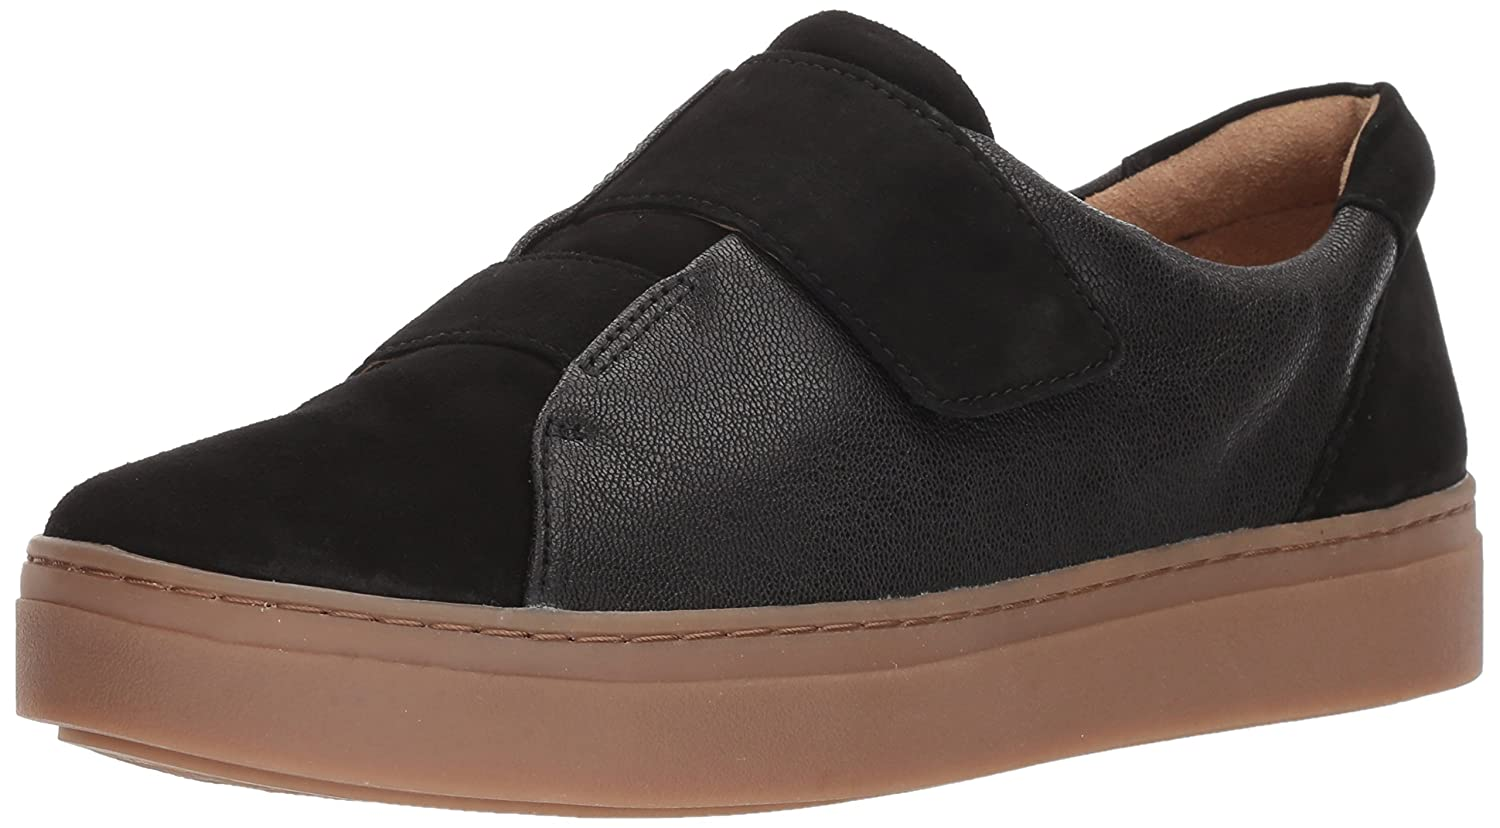 Naturalizer Women's Charlie Sneaker B072DX4GCR 6 B(M) US|Black